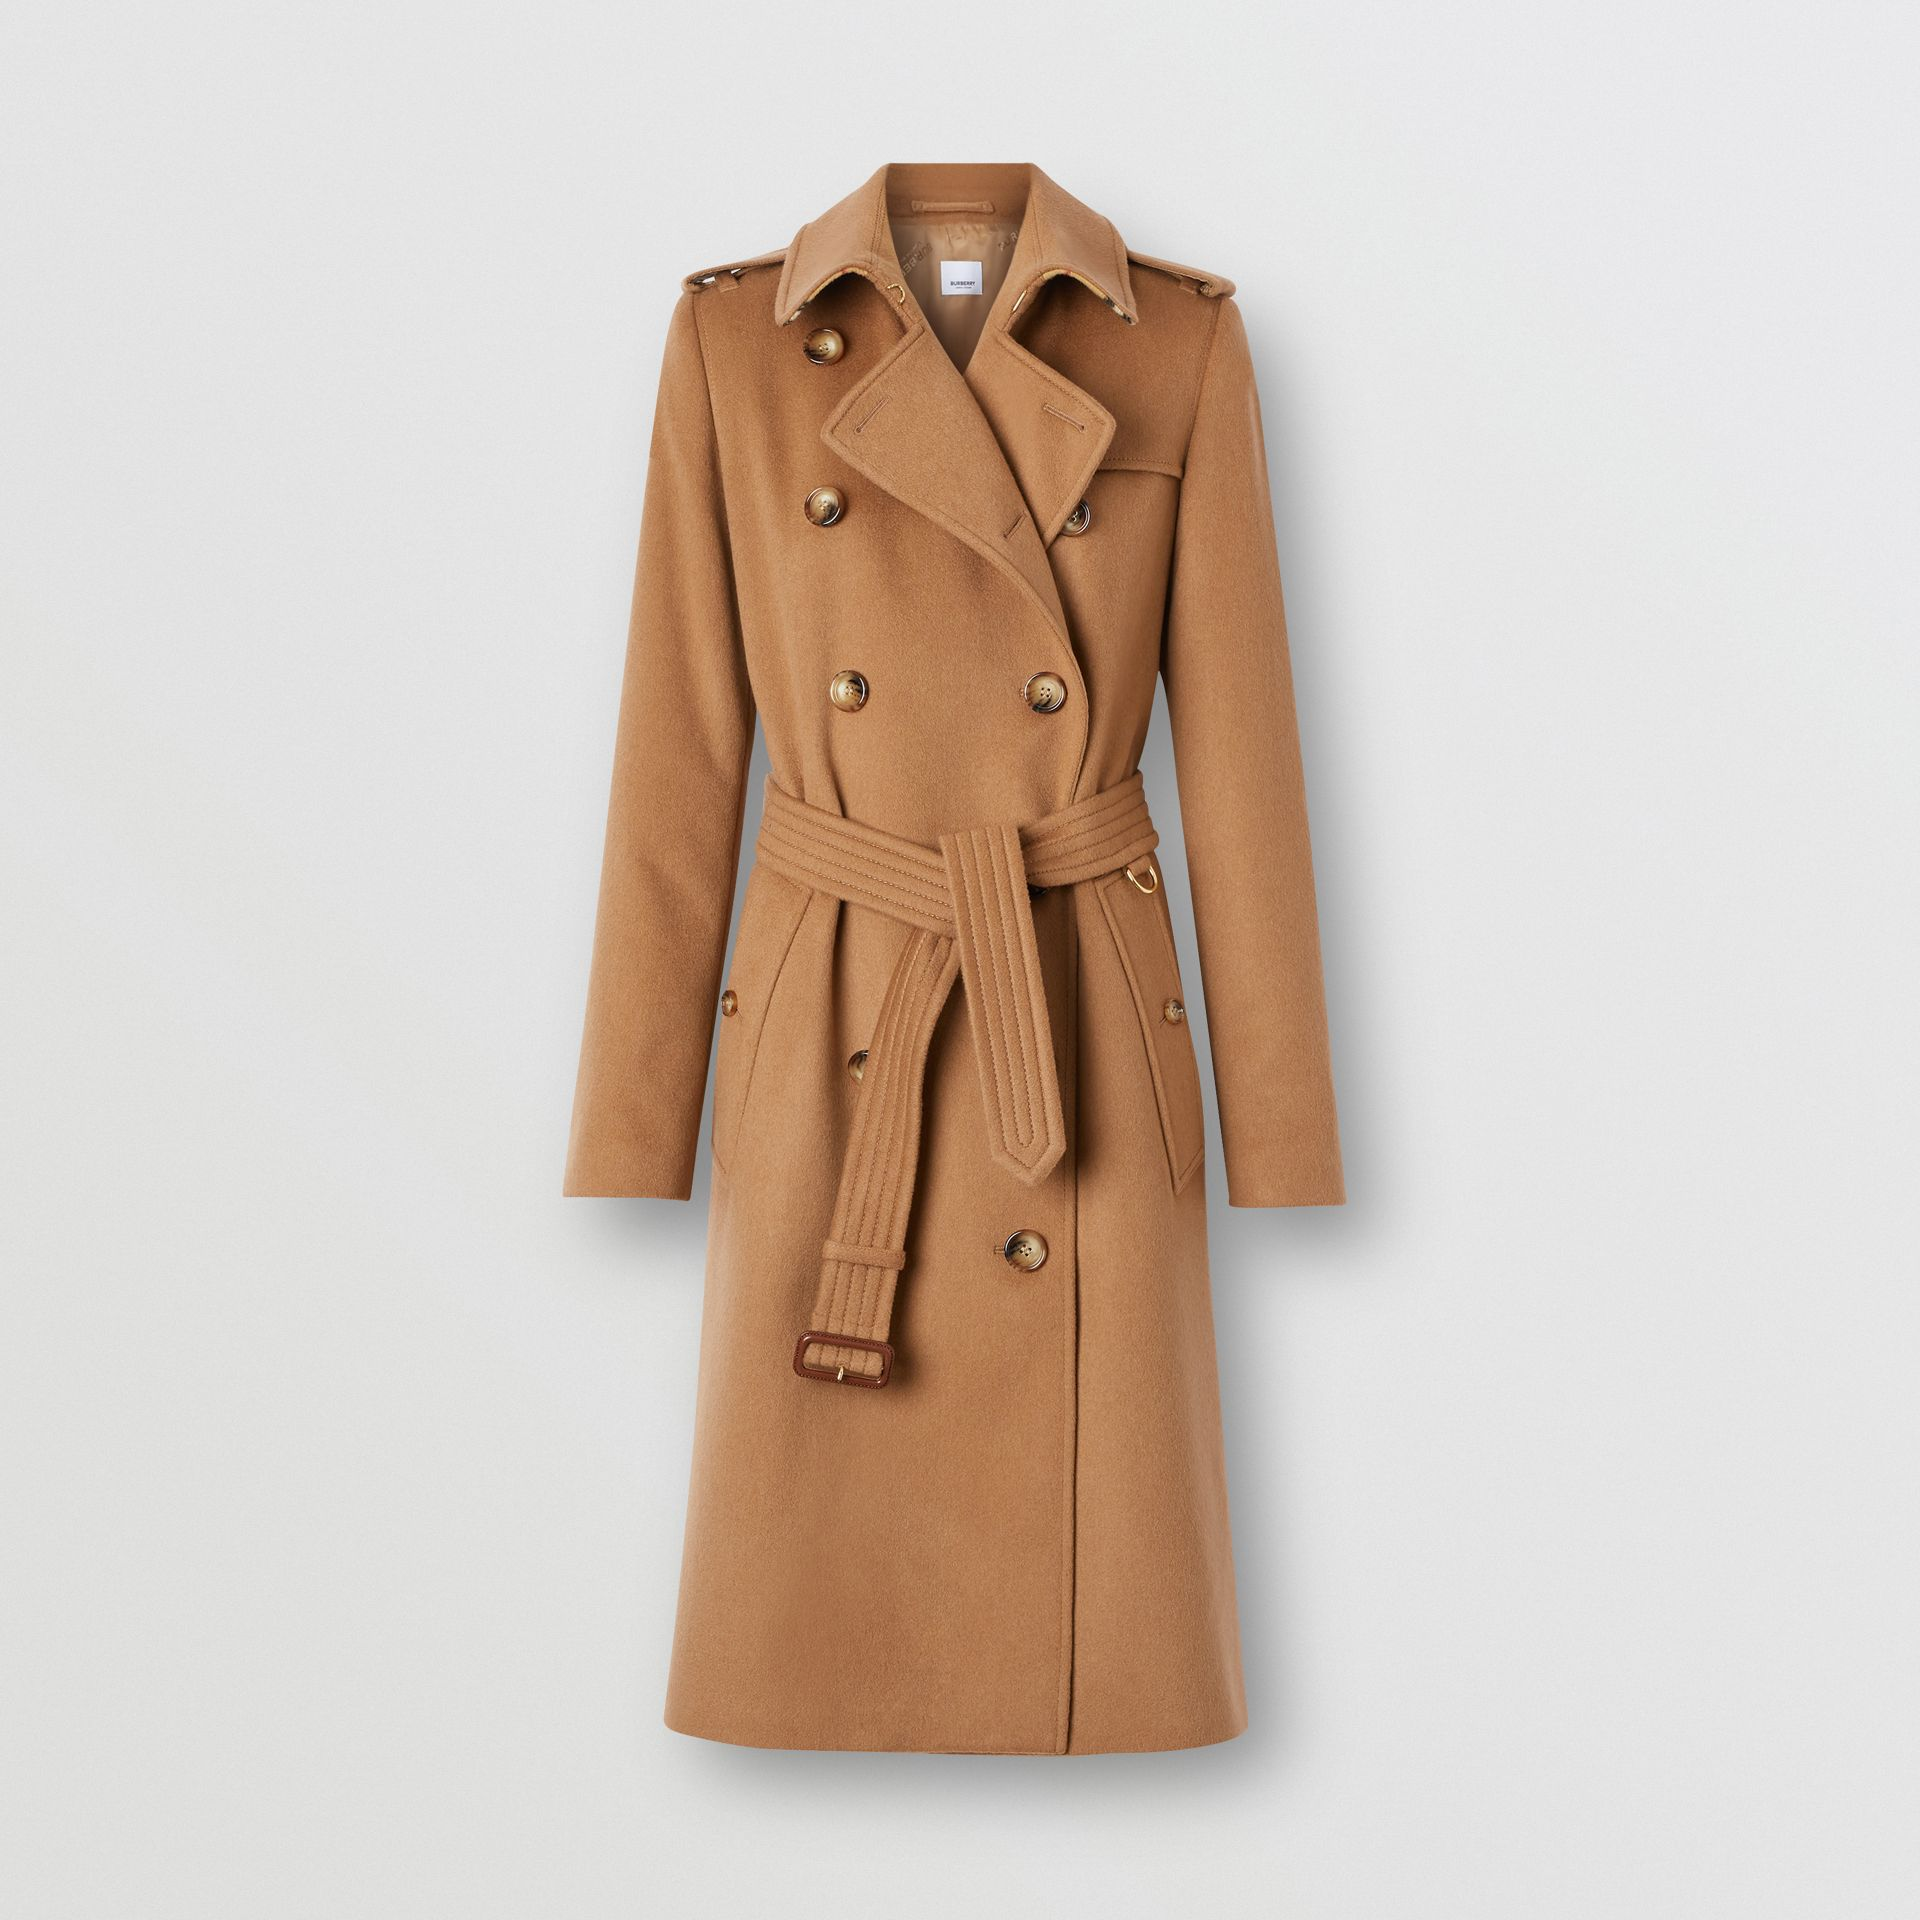 Cashmere Trench Coat in Bronze - Women | Burberry Singapore - gallery image 3